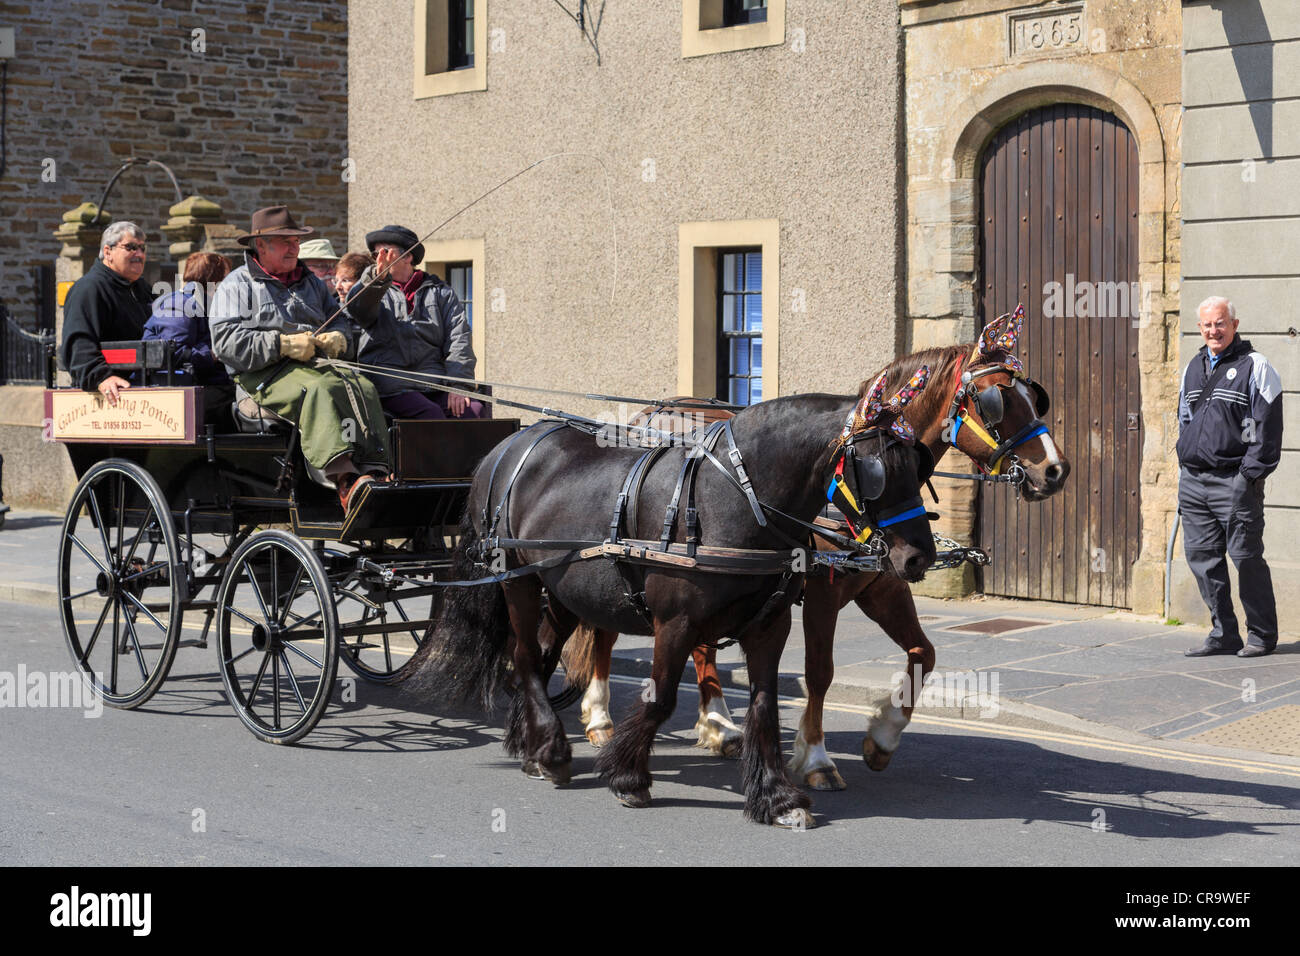 Tourists on a city tour by tourist horse and carriage in Kirkwall, Orkney Islands Mainland, Scotland, UK - Stock Image